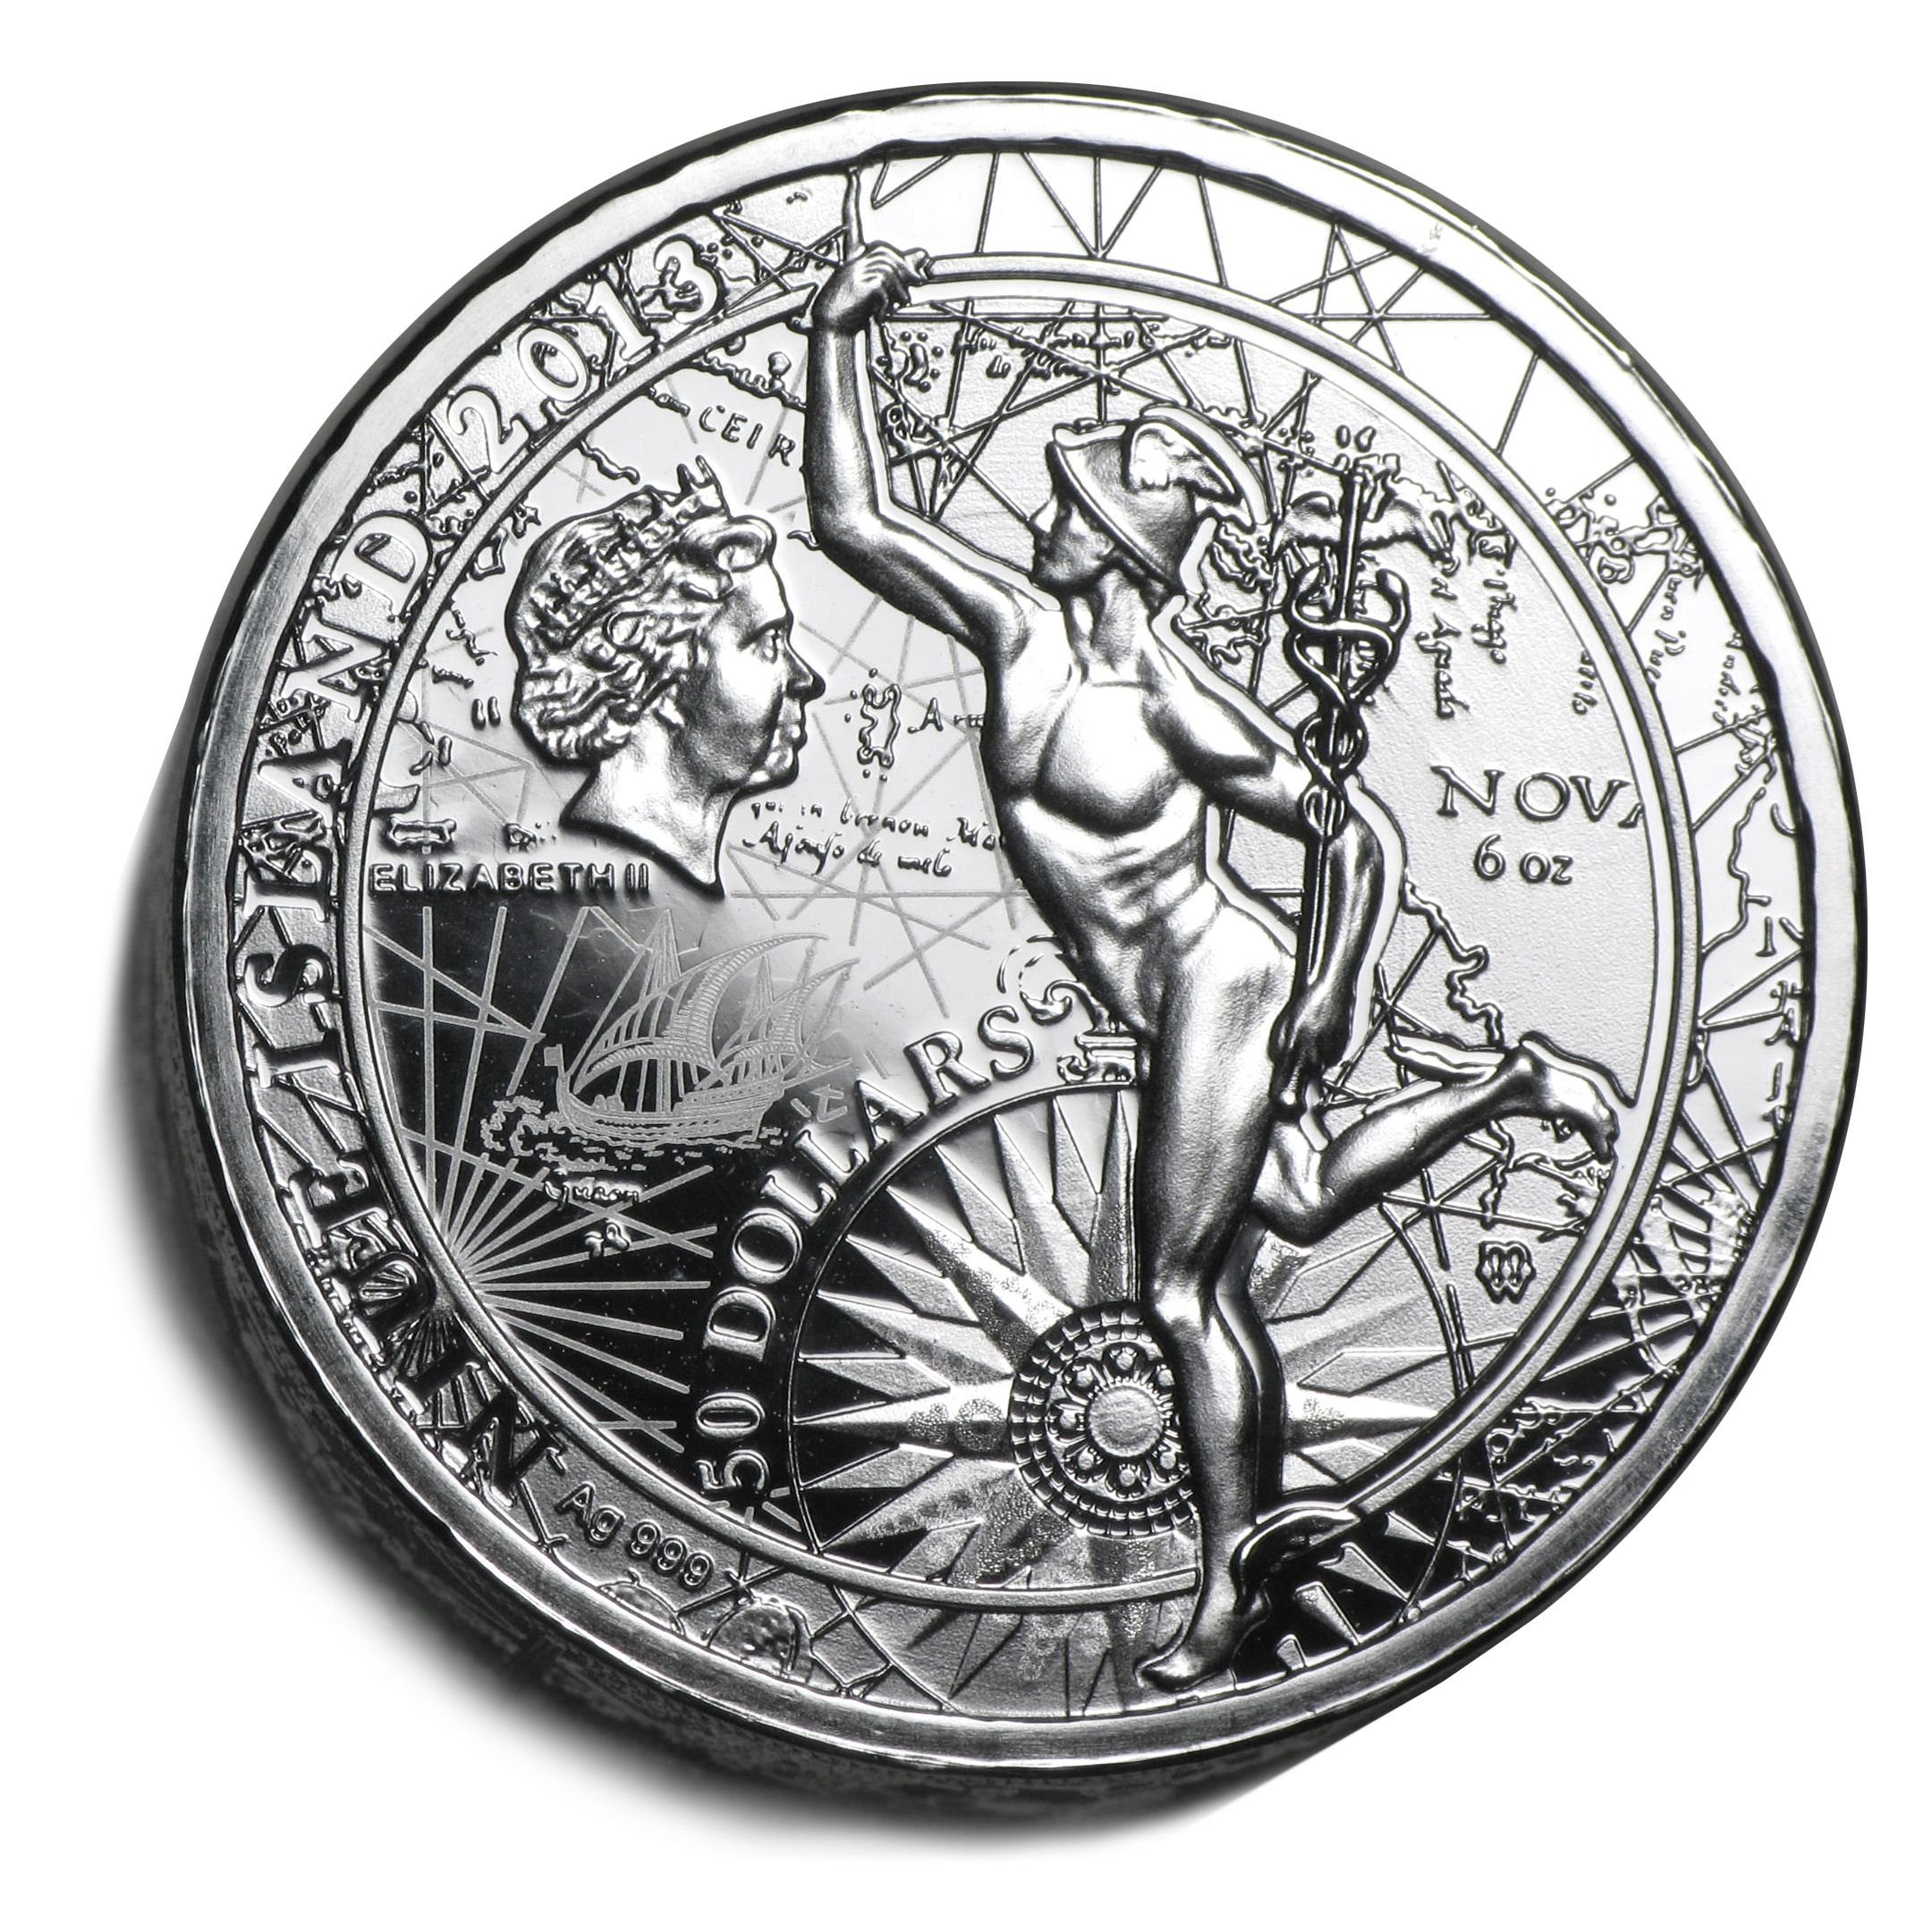 2013 Niue Fortuna Redux Mercury Proof (First Cylinder Coin)